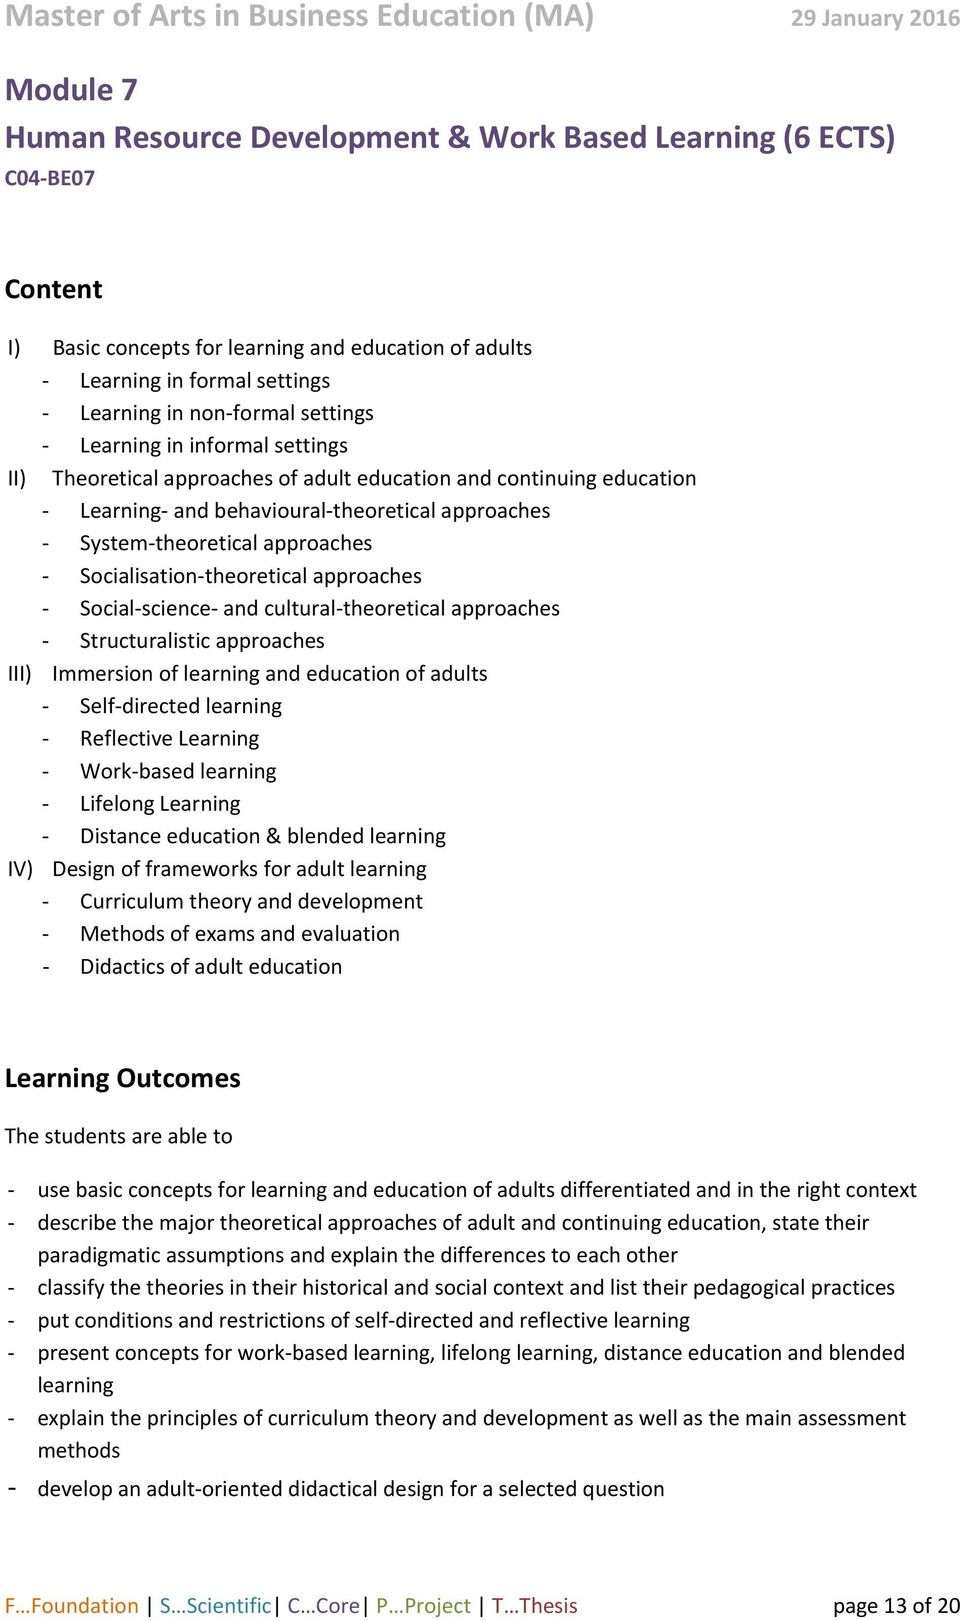 approaches Social science and cultural theoretical approaches Structuralistic approaches III) Immersion of learning and education of adults Self directed learning Reflective Learning Work based